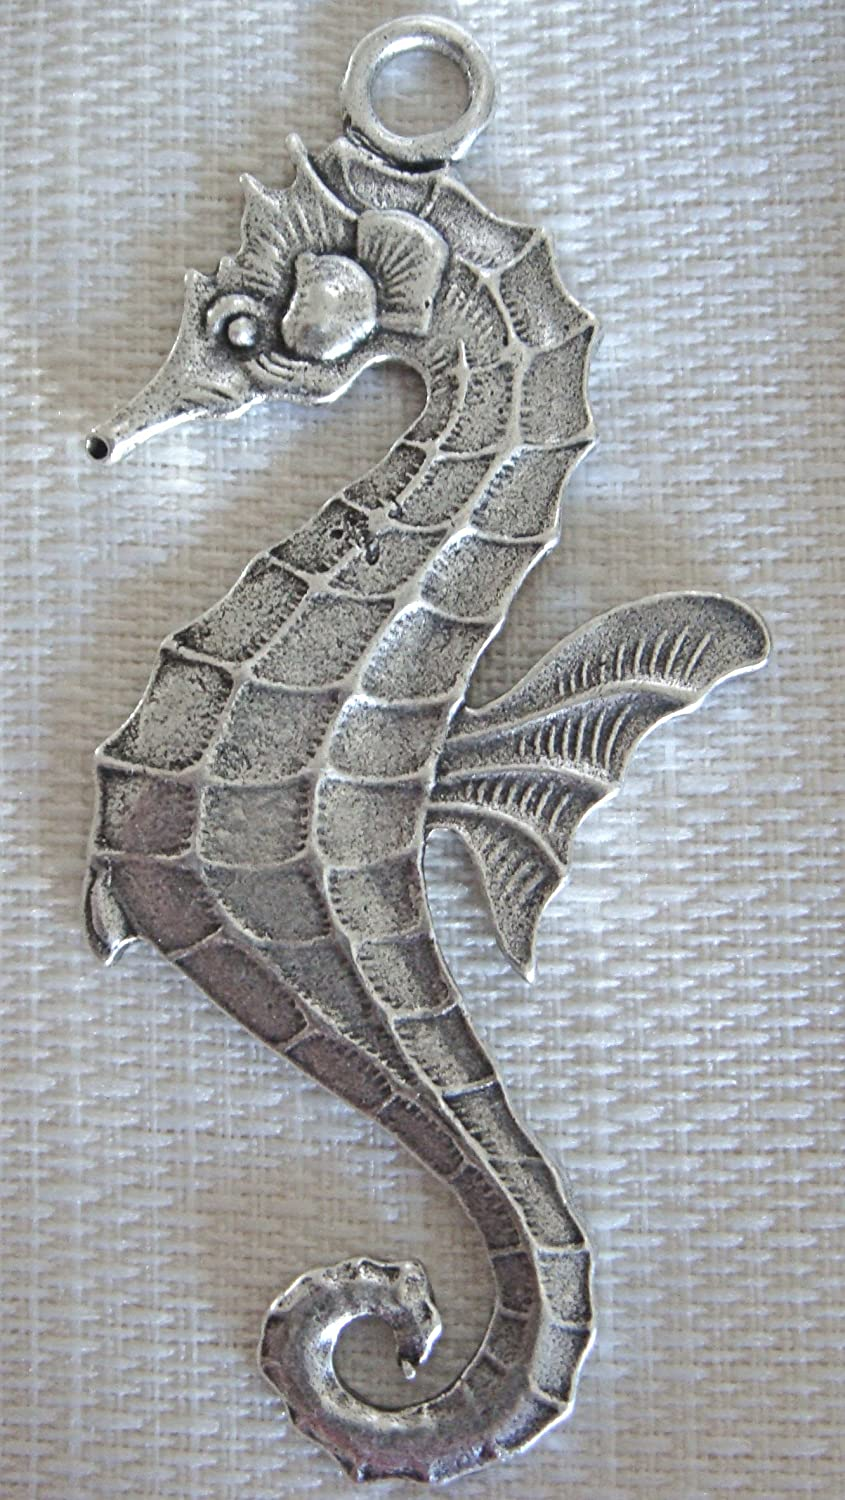 Amazon.com: Seahorse Shower Curtain Hook Add-on -Antique Silver ...